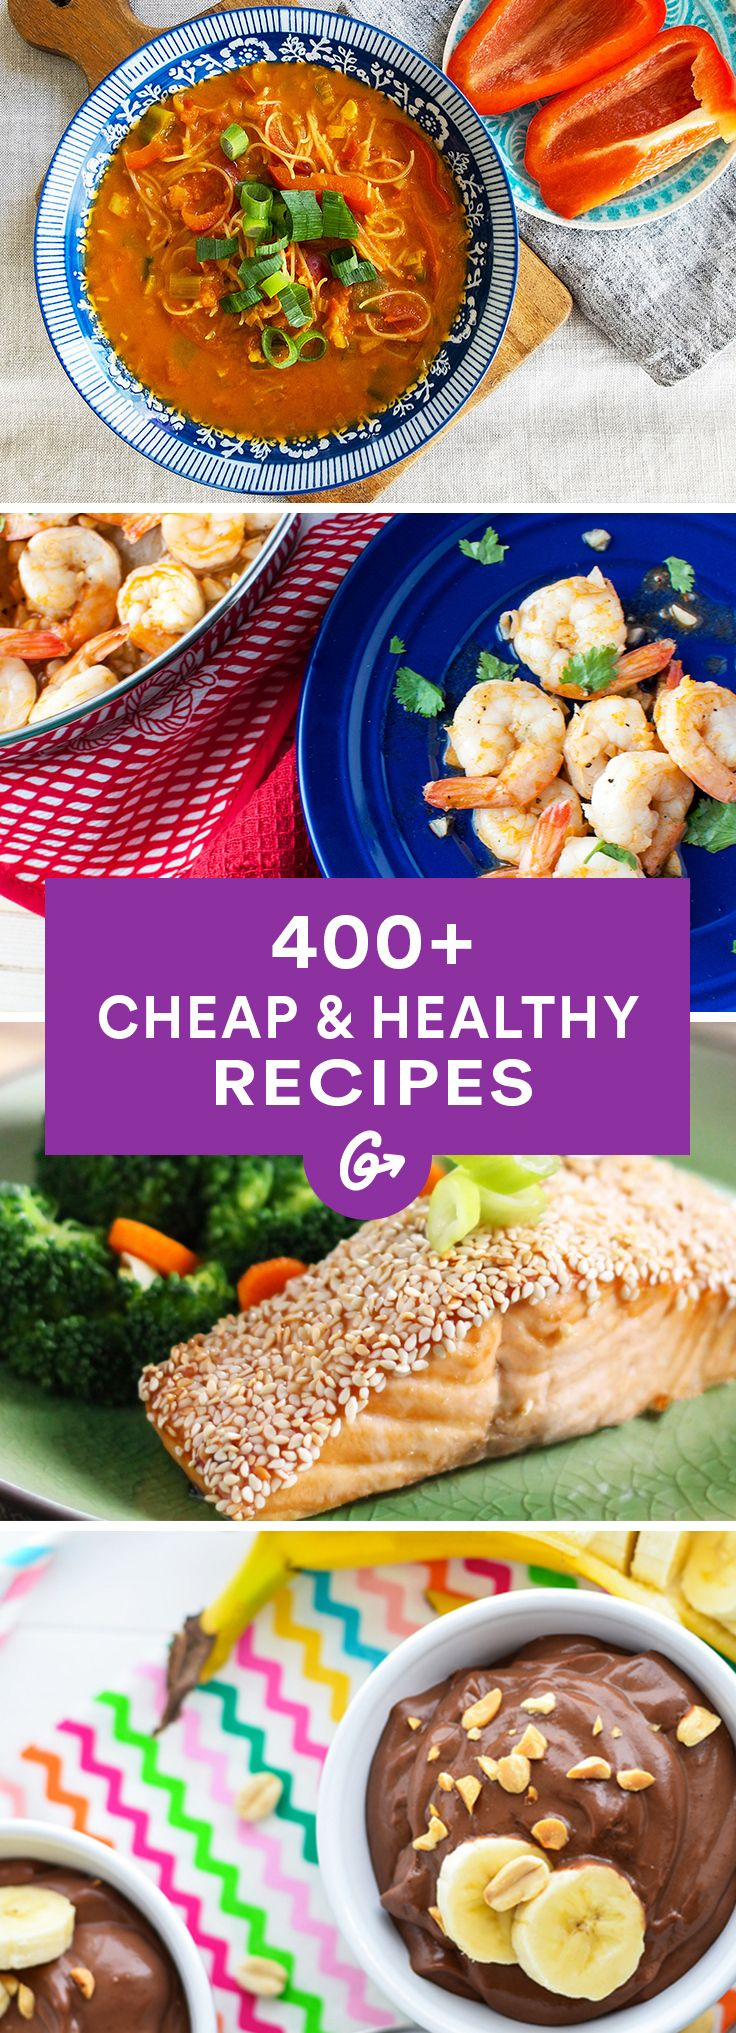 Diet Plan To Lose Weight The Ultimate Resource For Cheap And